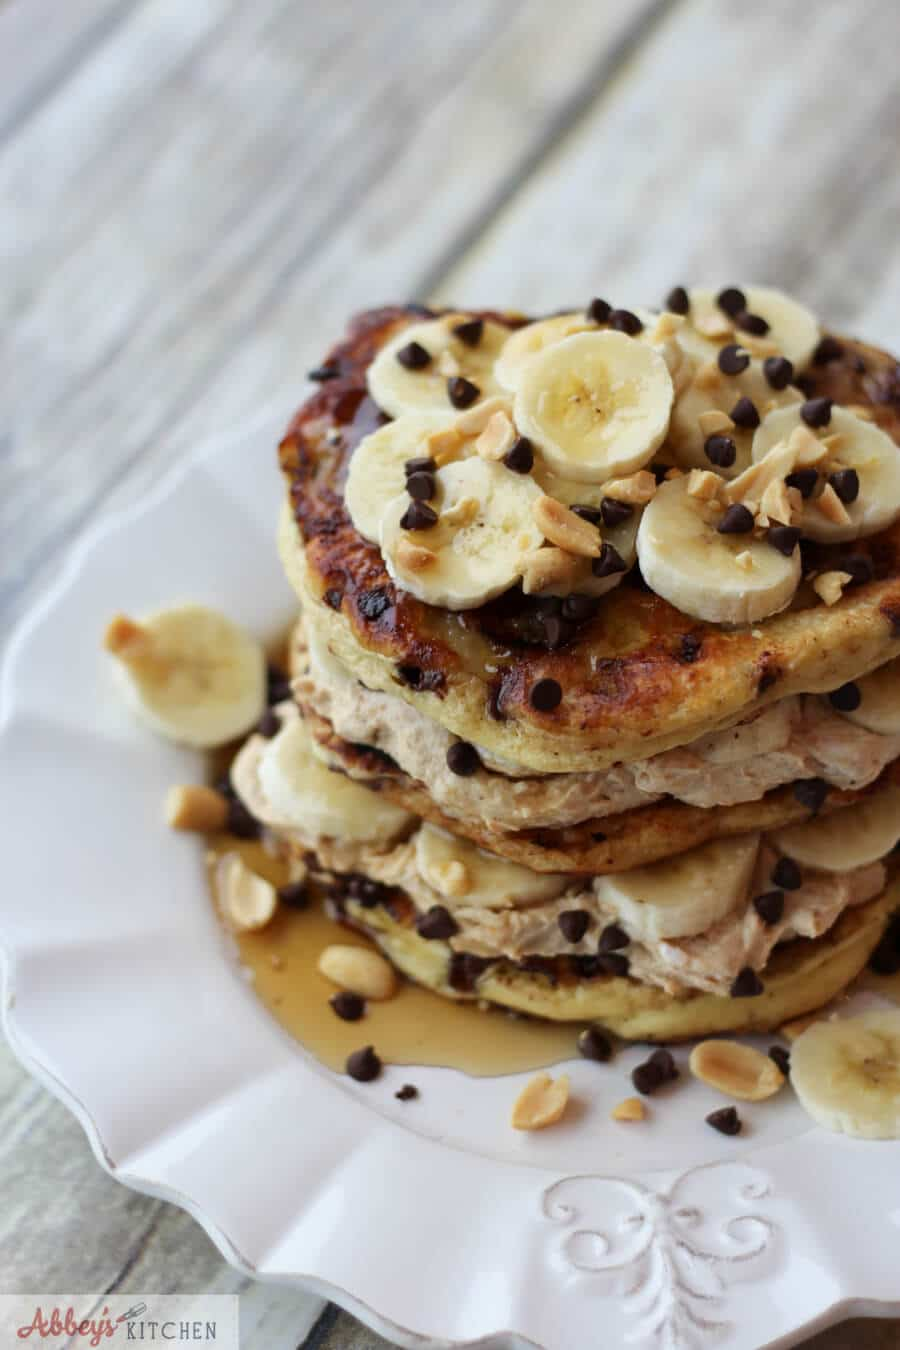 A stack of peanut butter banana protein pancakes with banana slices on top.